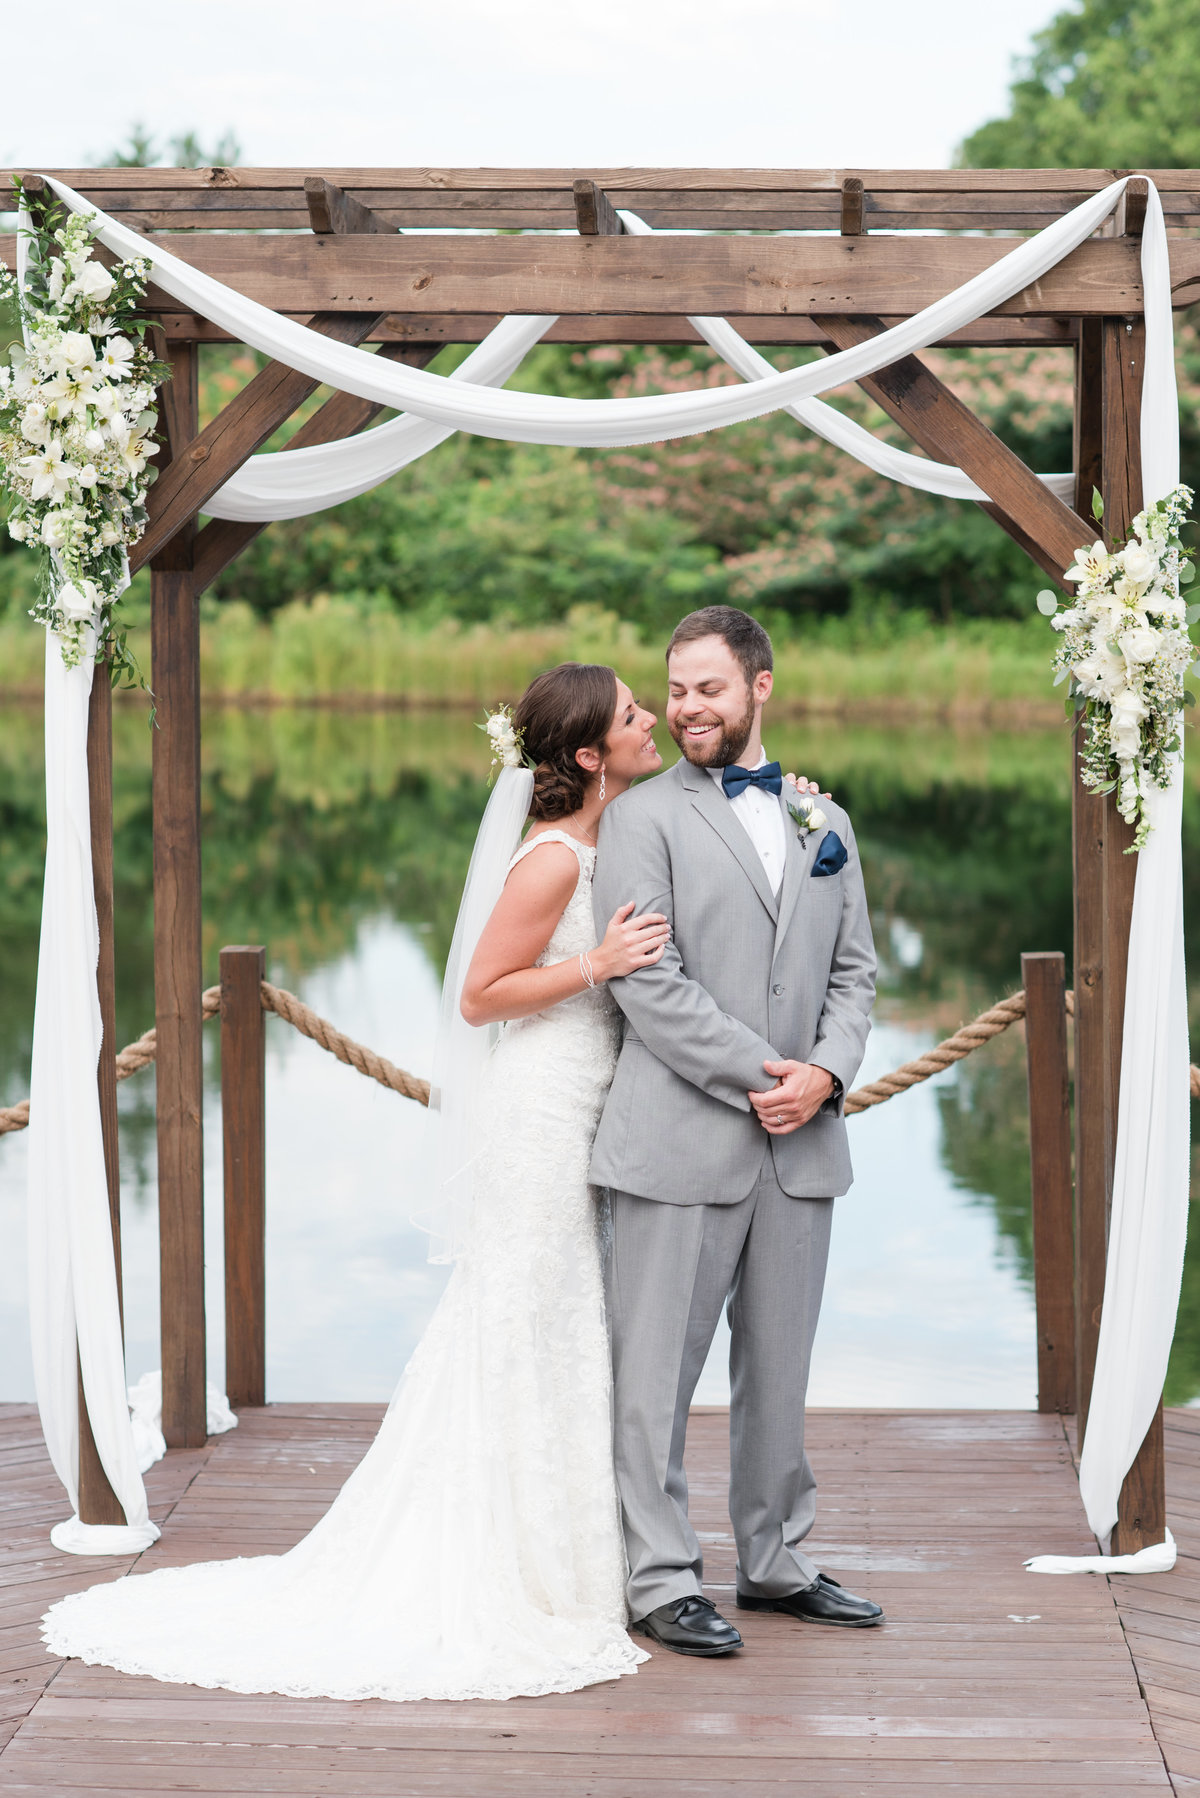 An Elegant Meadows At Walnut Cove, Michelle and Sara Photography, Walnut Cove NC1